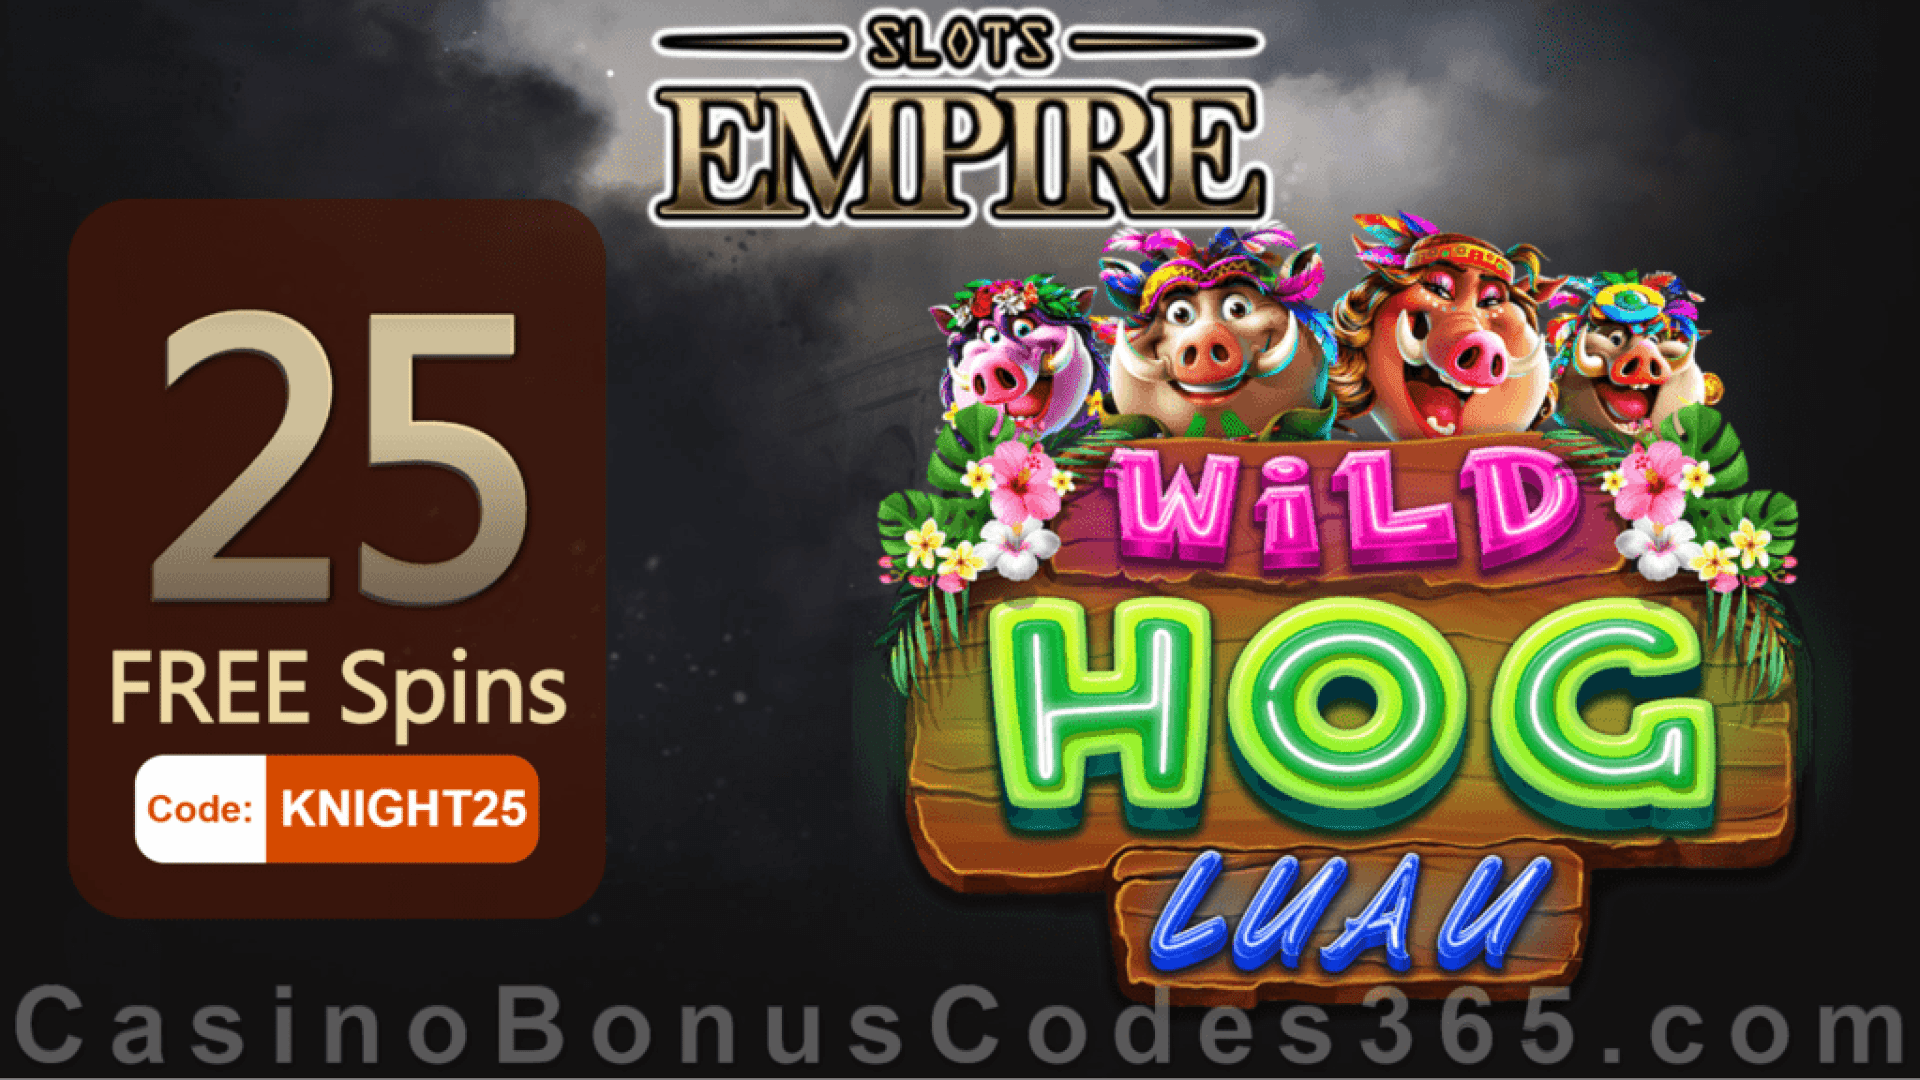 Slots Empire Exclusive 25 FREE Spins on RTG Wild Hog Luau New Players Deal